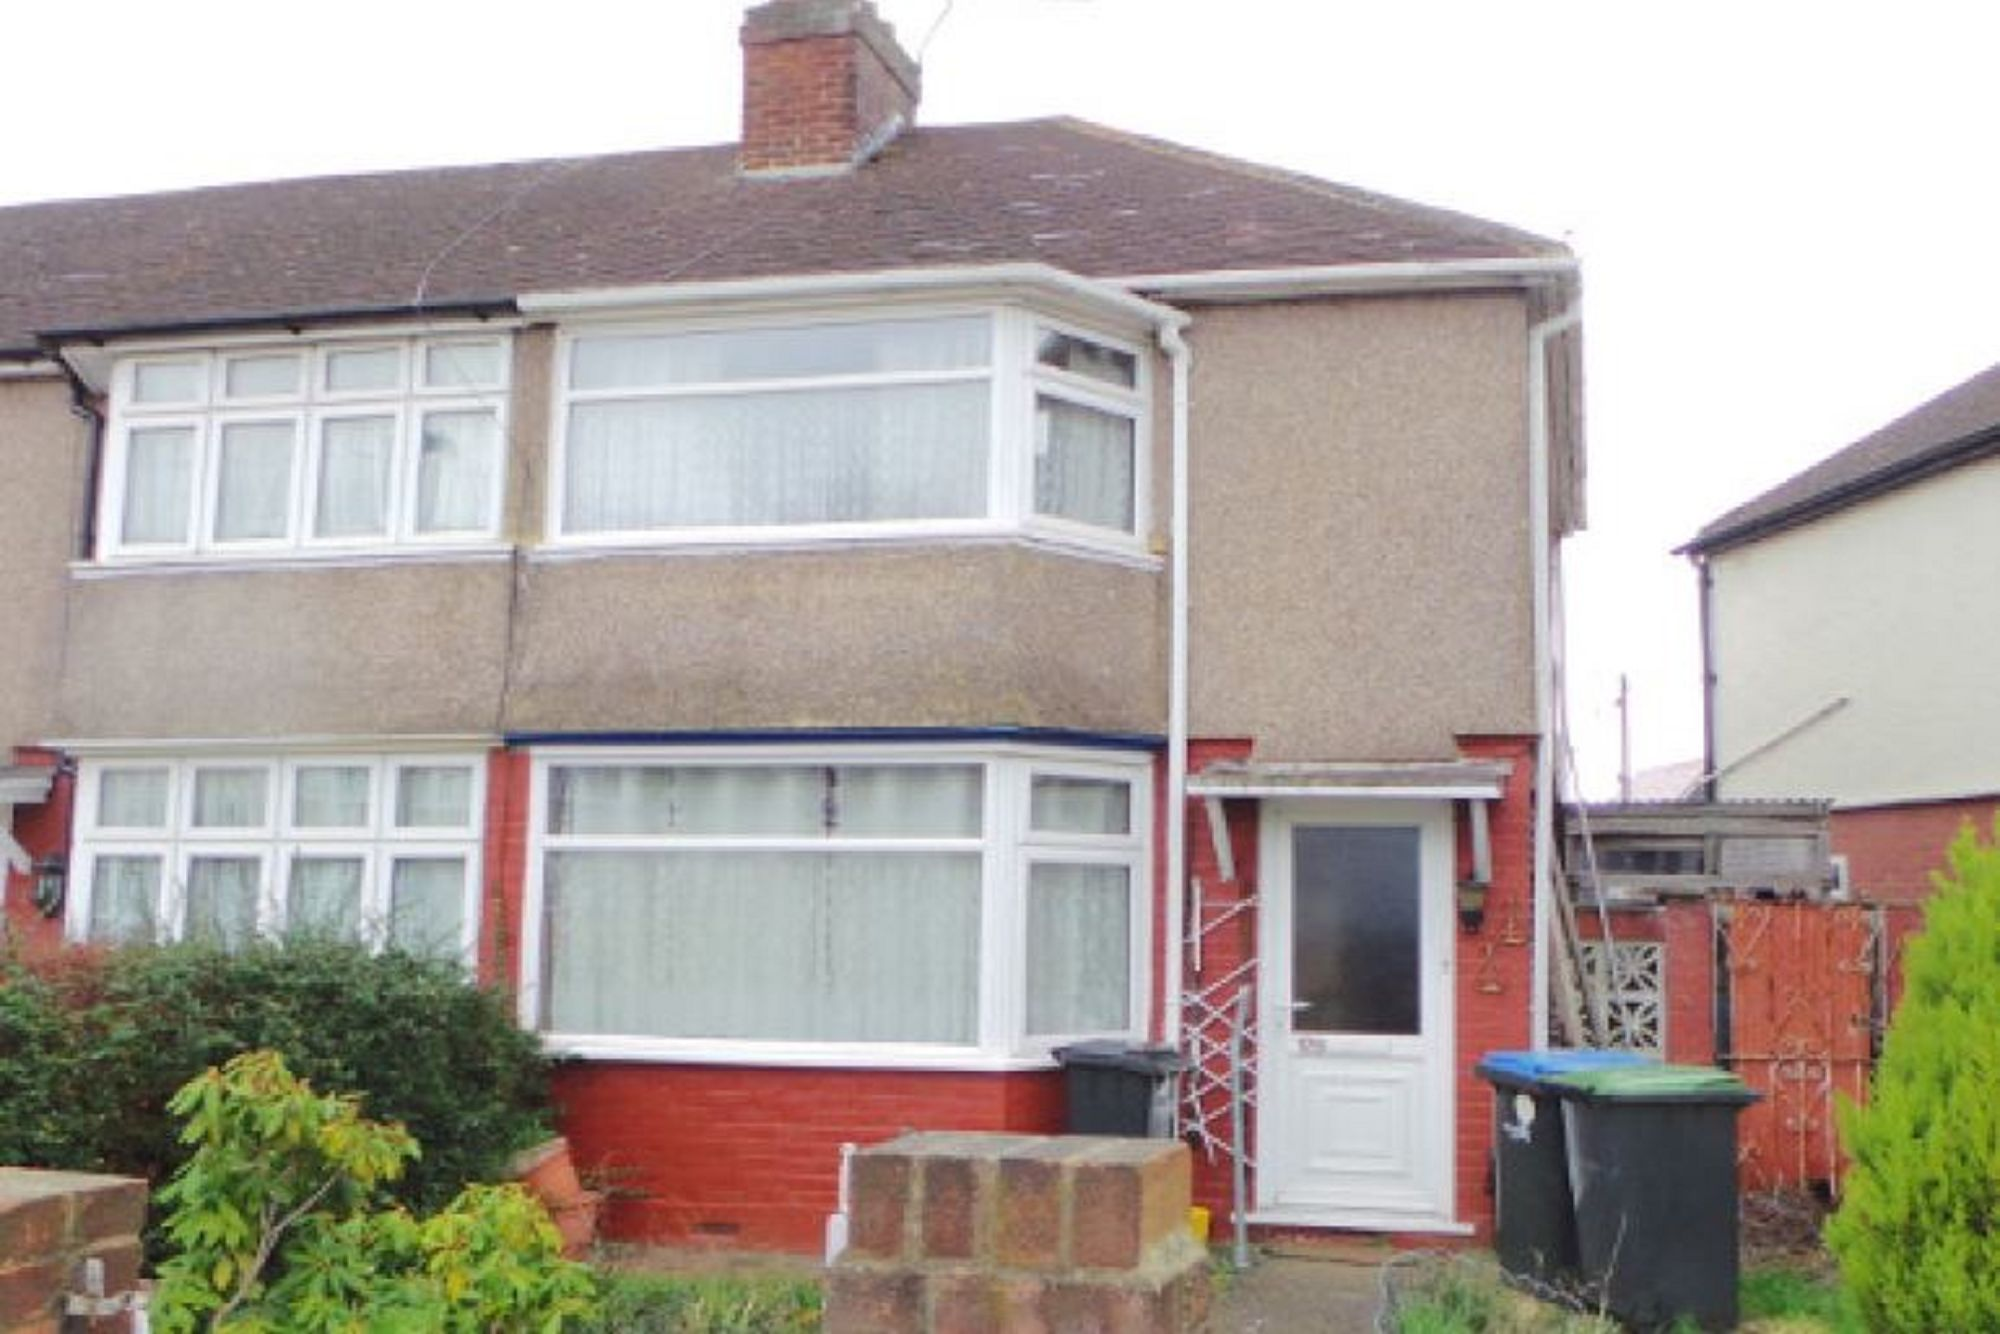 Chatsworth Drive, Enfield, EN1 1EU